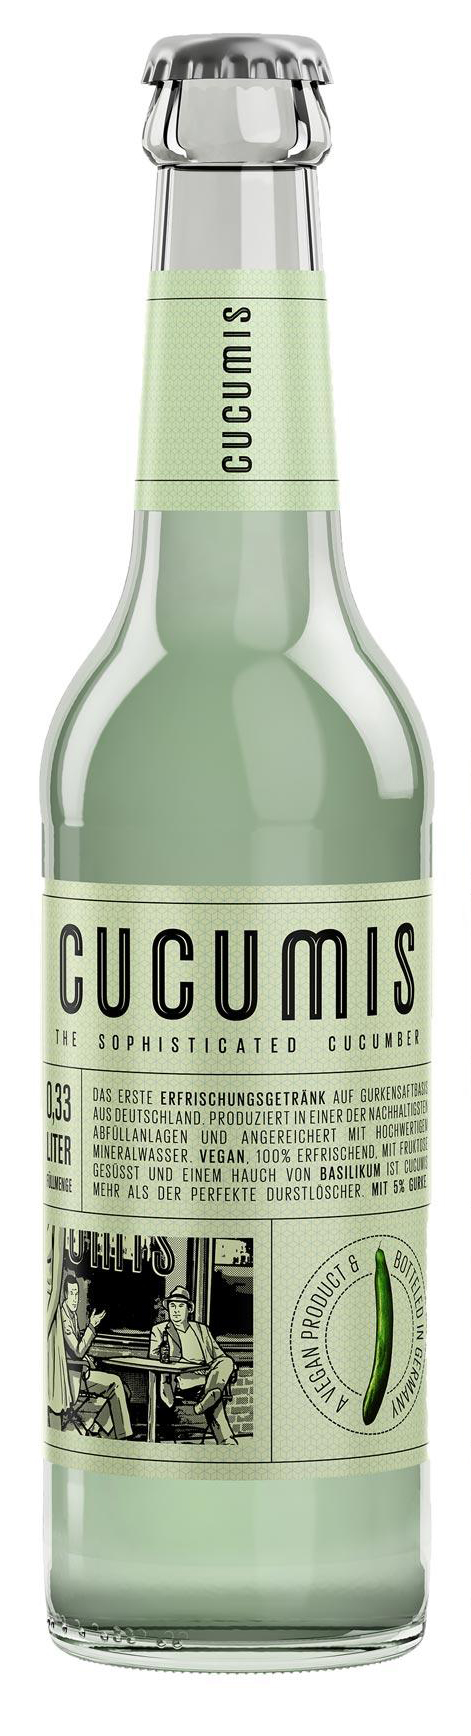 Bildergebnis für Cucumis - The sophisticated cucumber